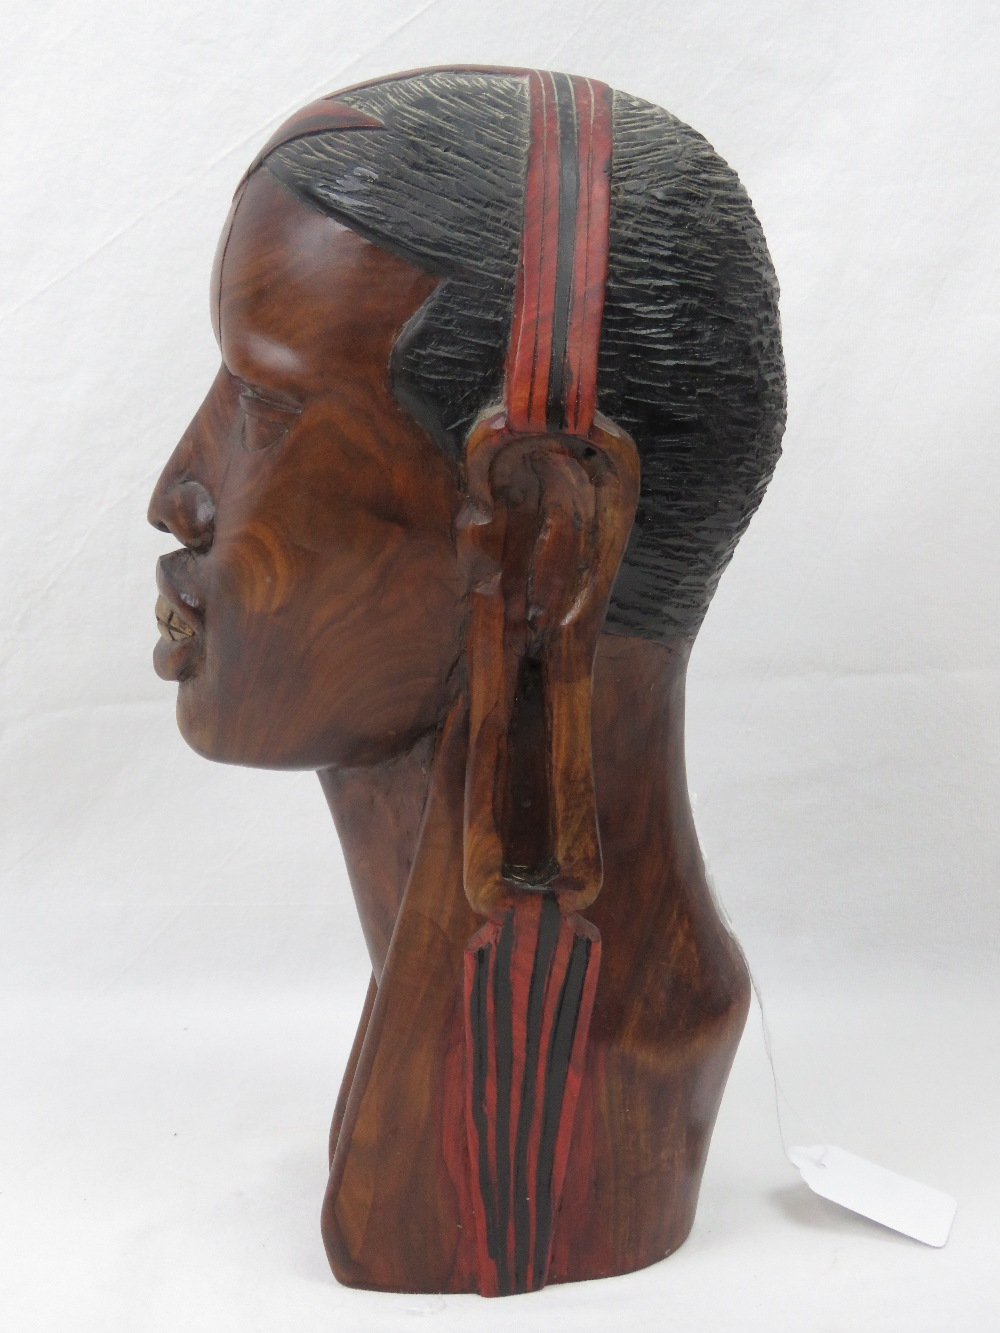 Lot 442 - A well carved wooden bust of an African